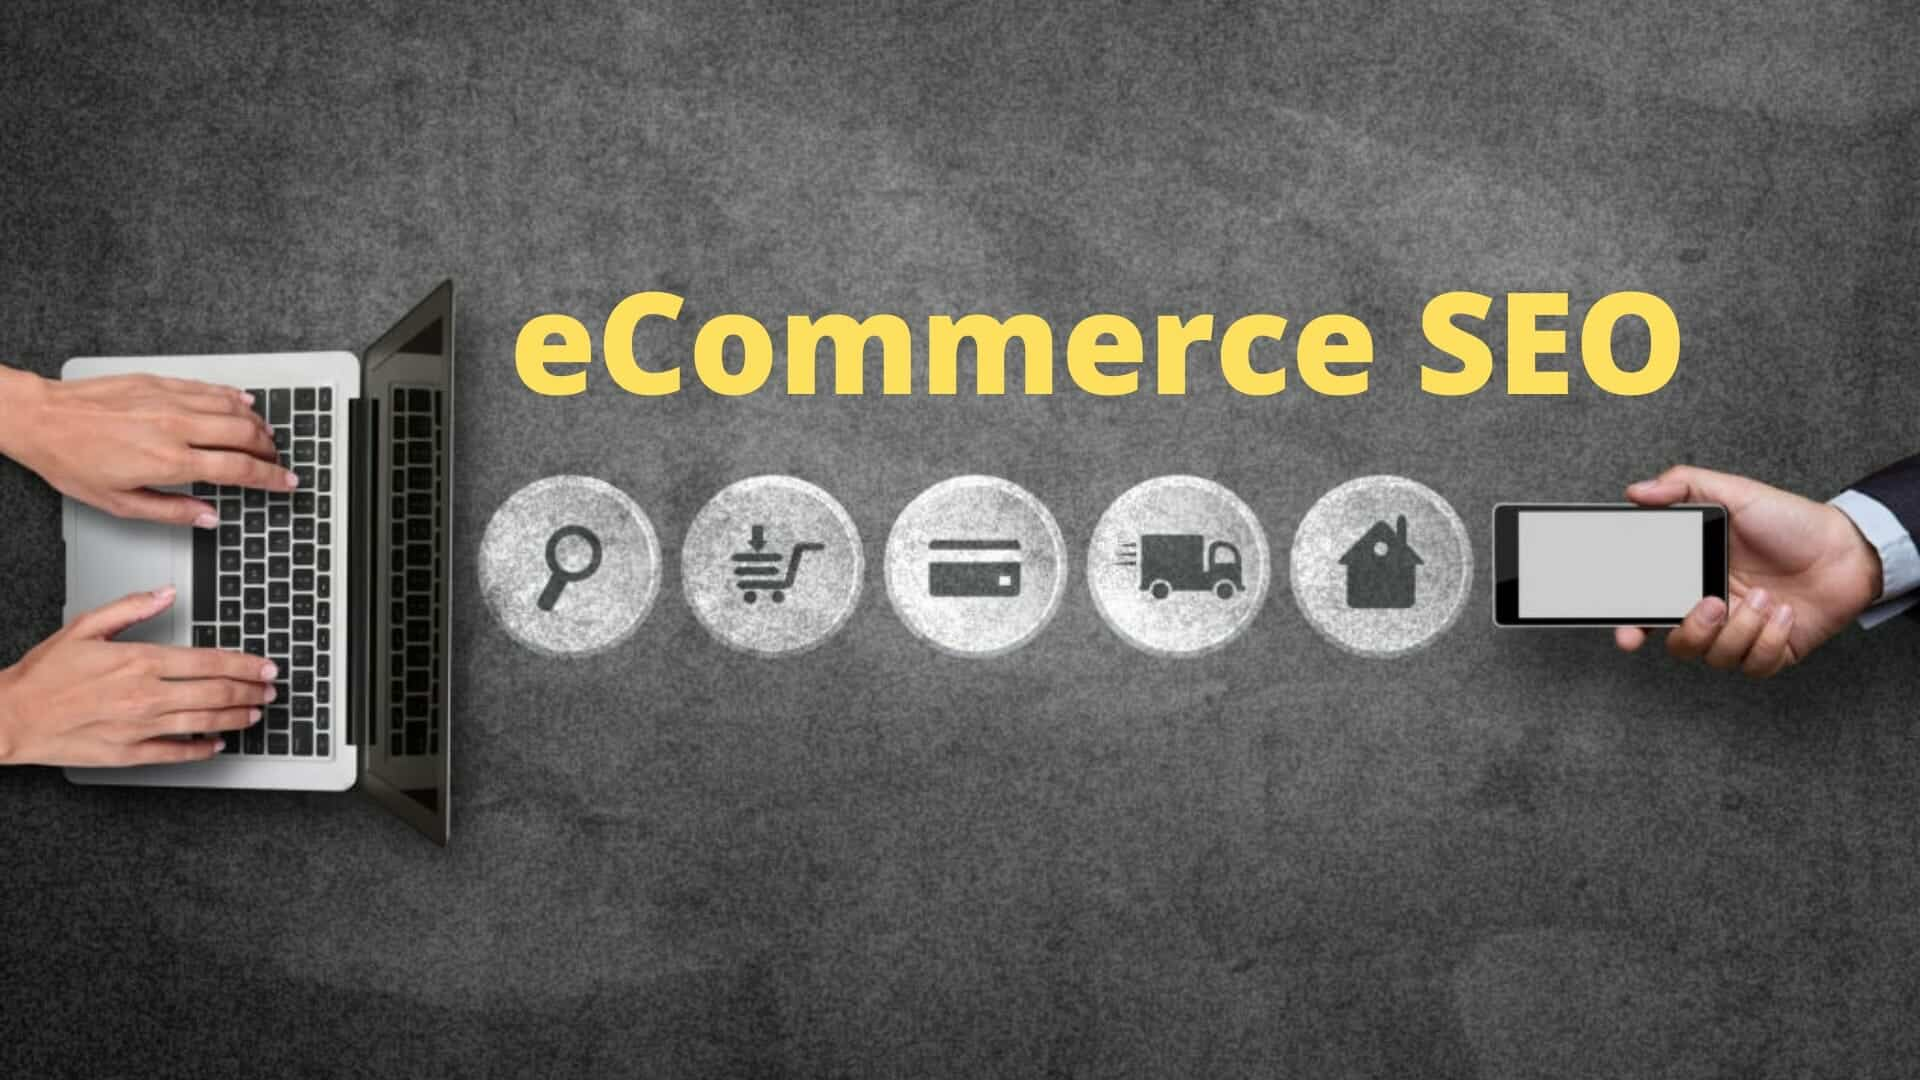 eCommerce SEO - 10 Different types of SEO that improve your online success